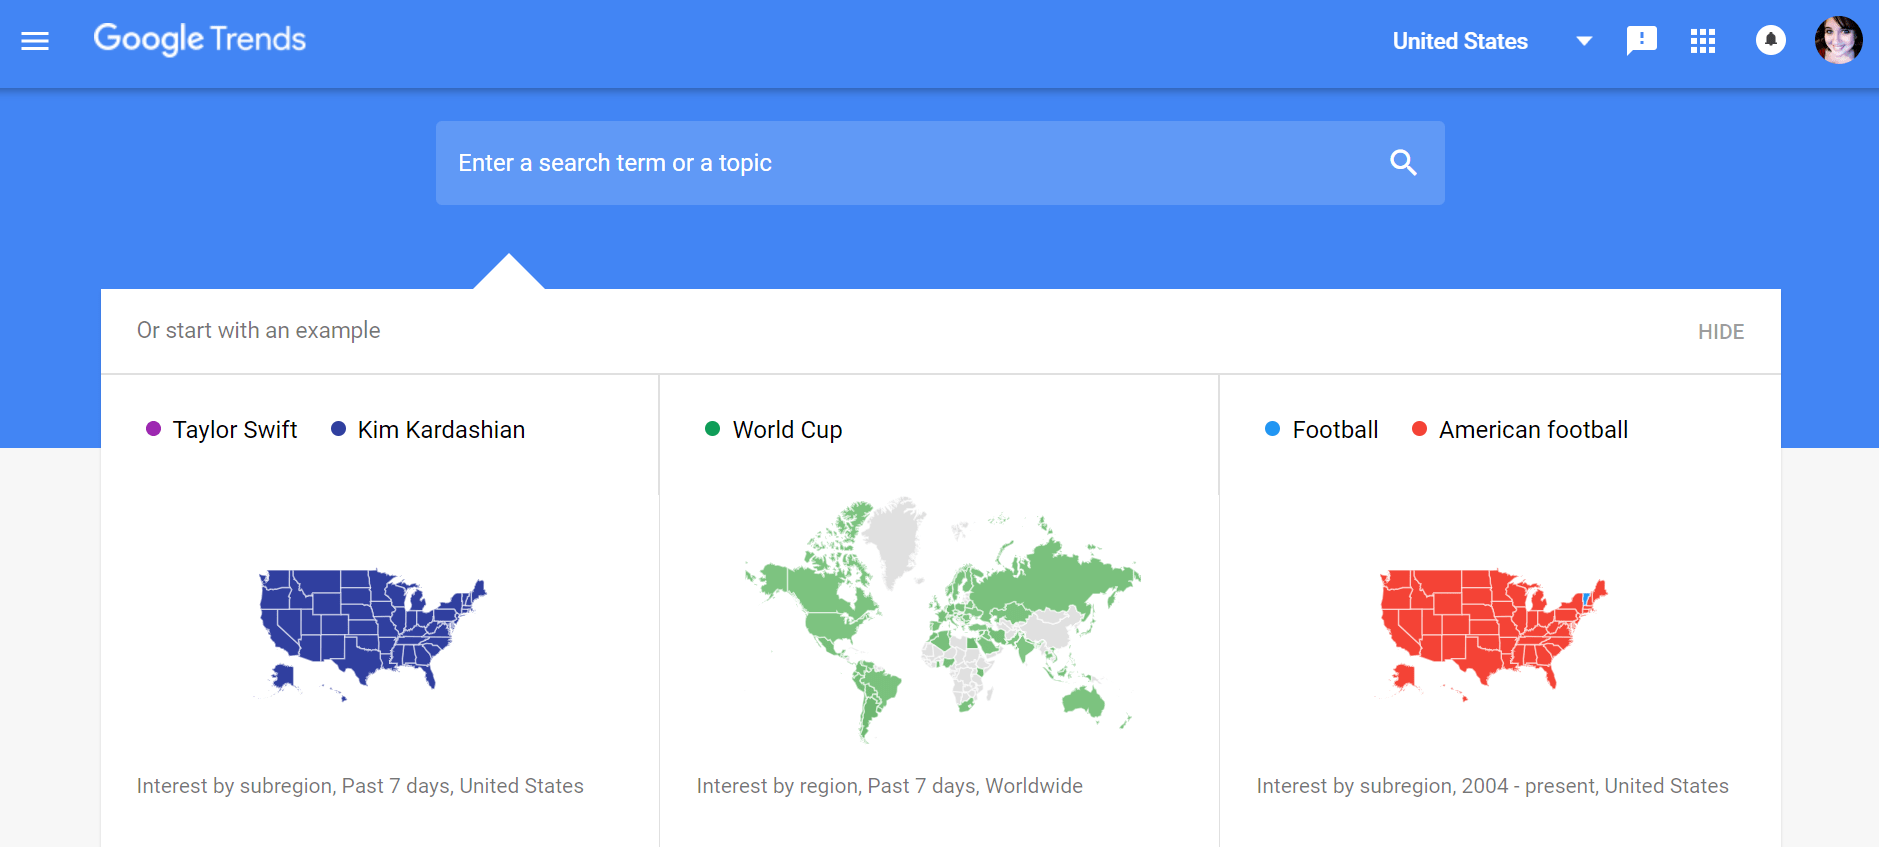 google trends is a